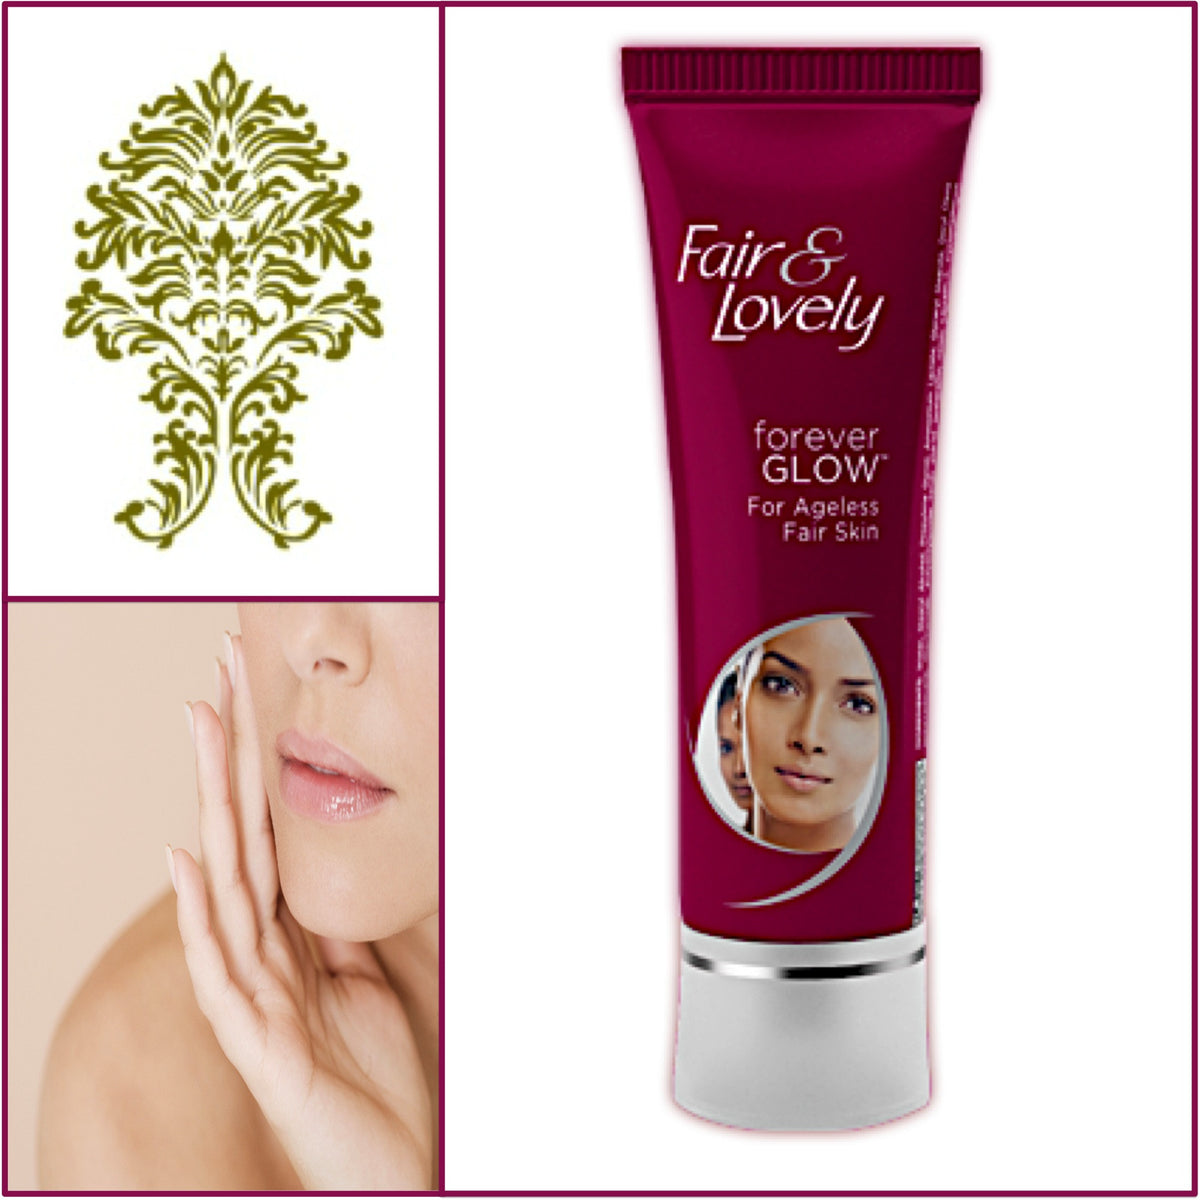 Fair & Lovely Forever Glow Cream - Younger Looking Skin 50g